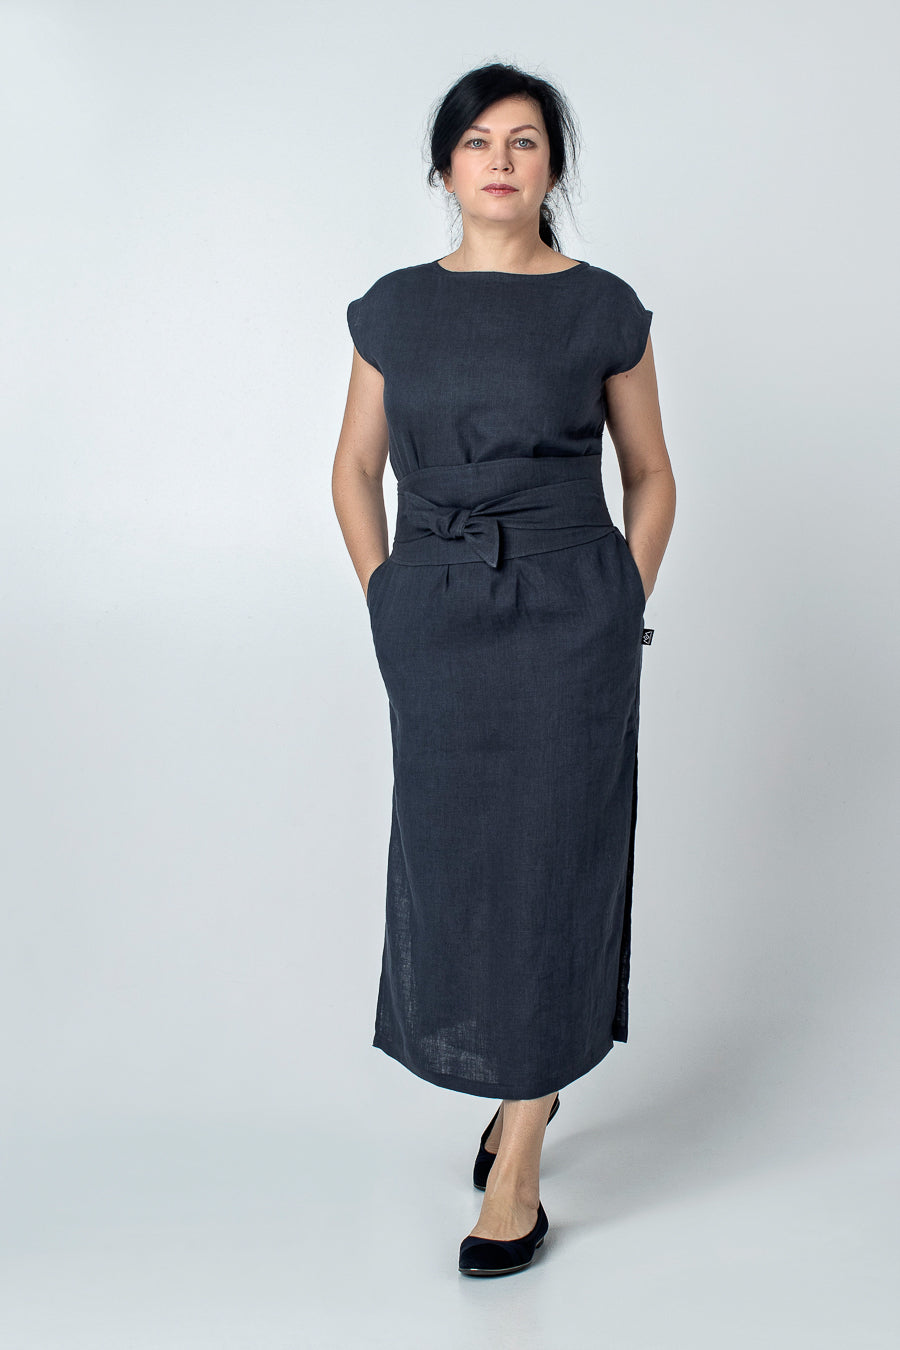 SOTI | 1940 pencil linen dress